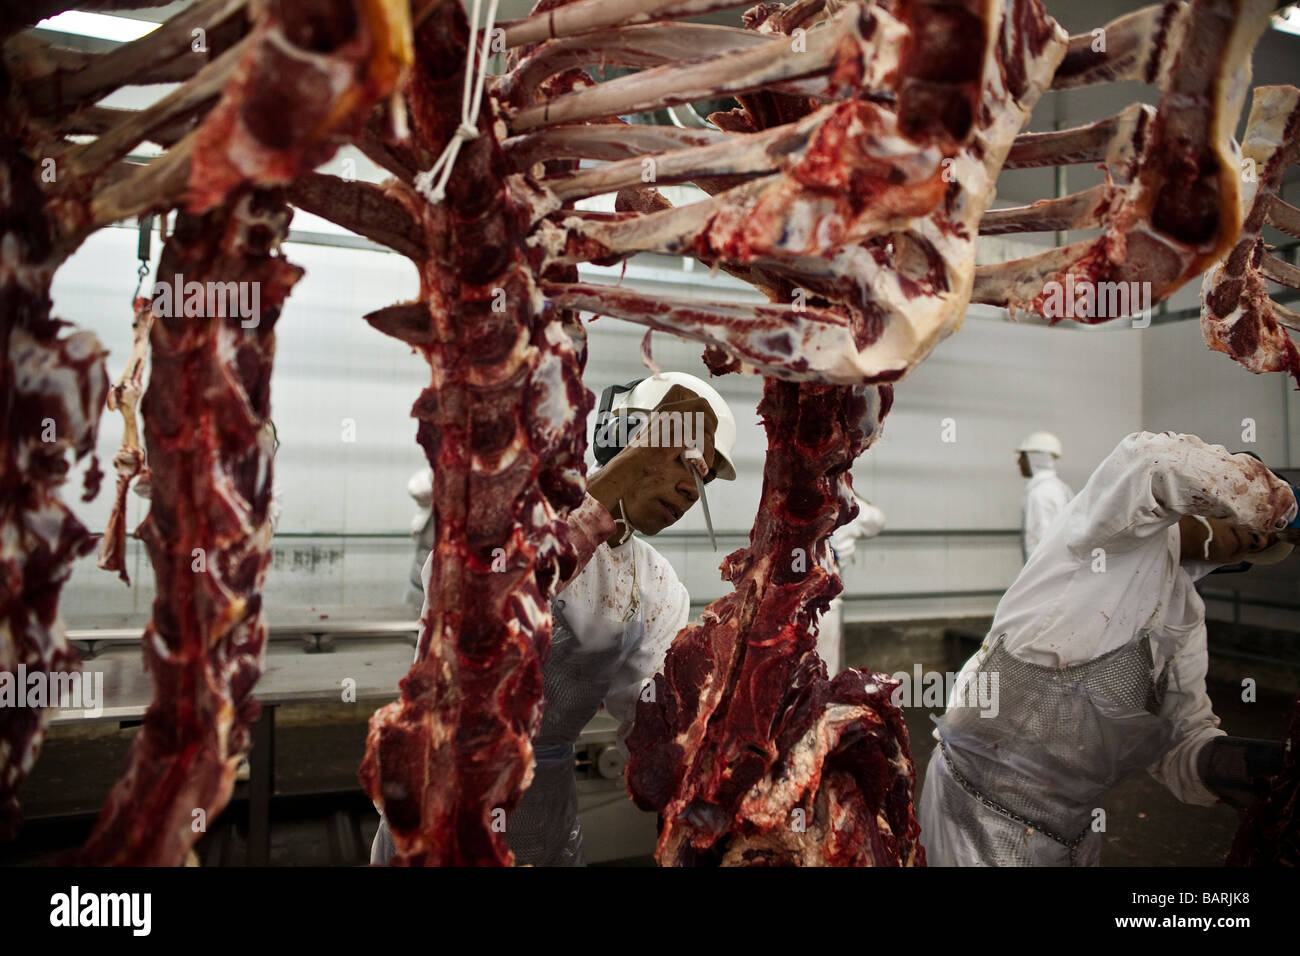 Slaughterhouse Facility meat export Mato Grosso State Amazon Brazil - Stock Image